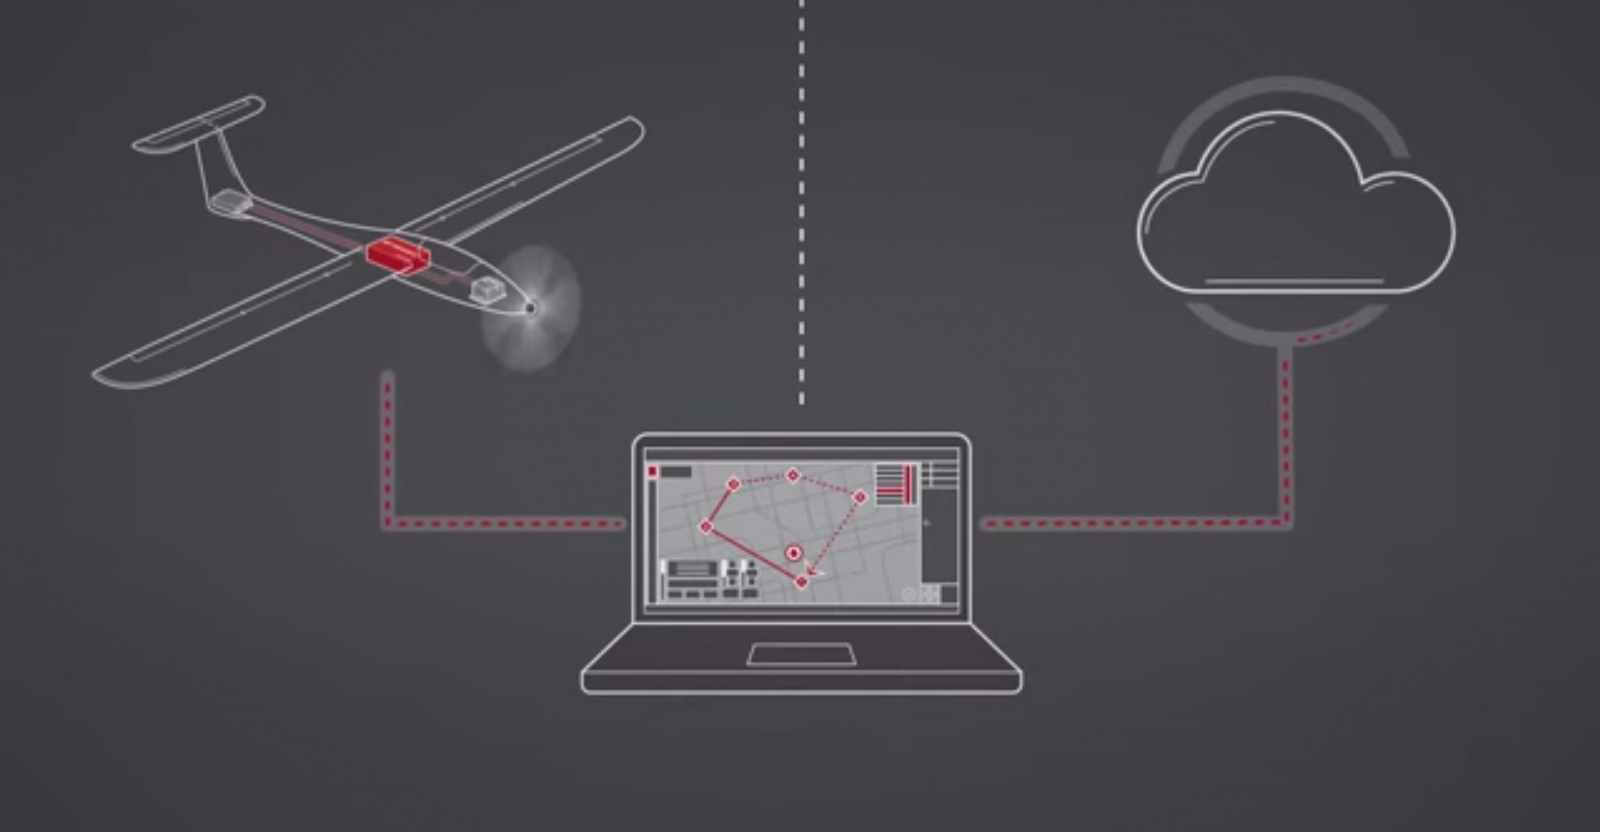 Airware's platform allows third party developers to hook their software up for the drones